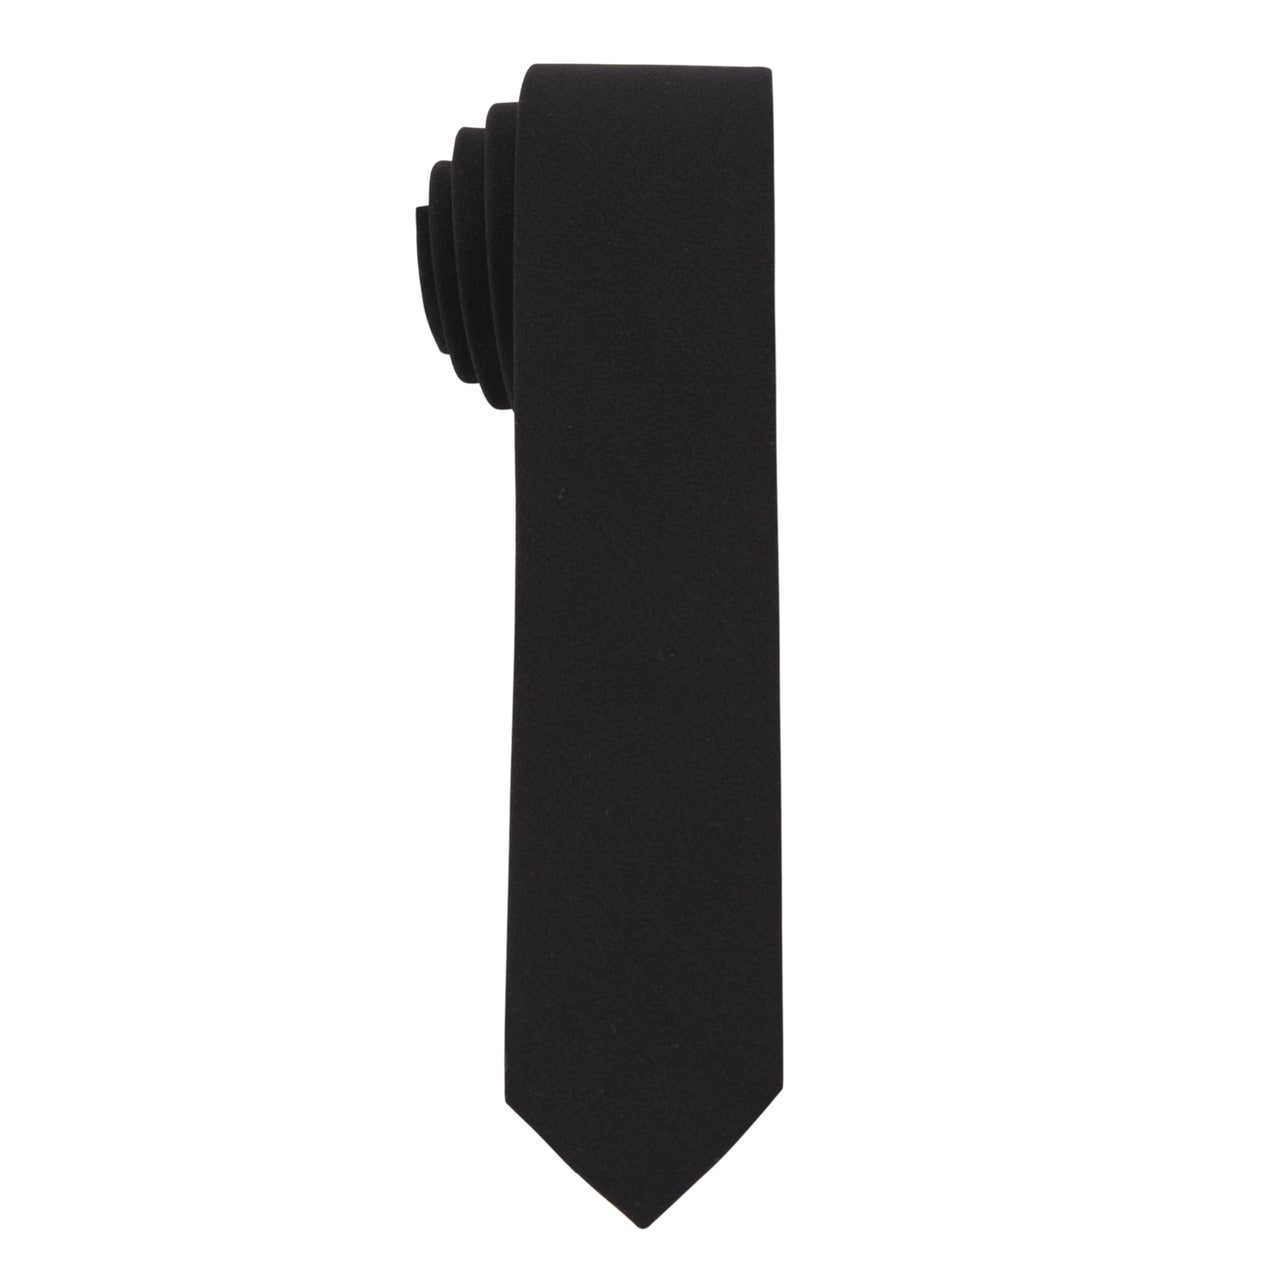 Skinny Tie Madness Men's The 'Here We Go Again' Solid Black Skinny Tie